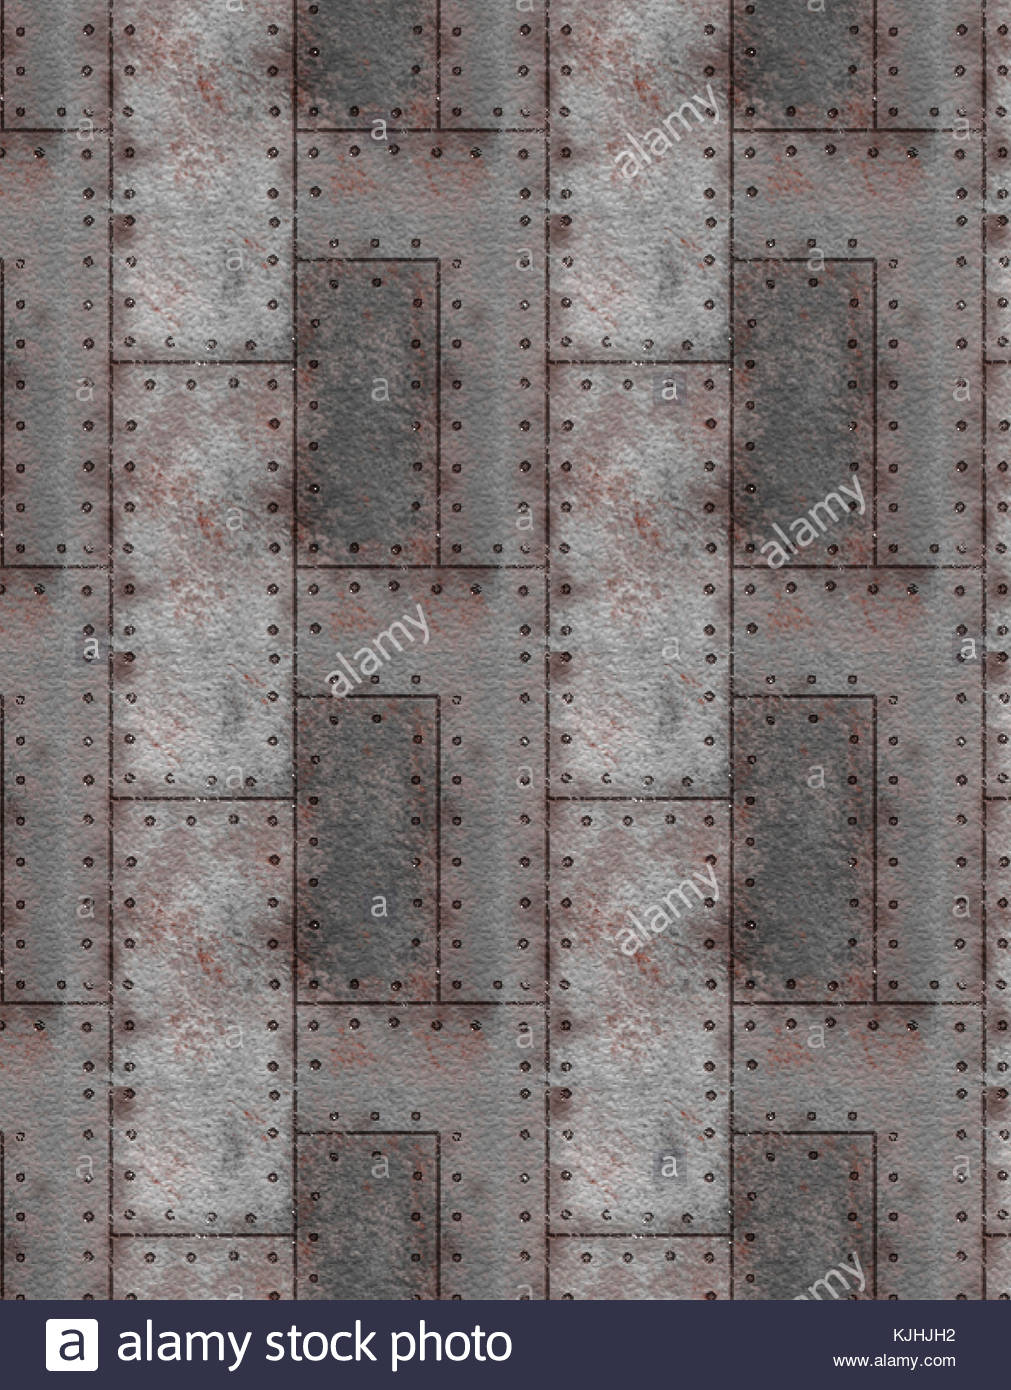 soft-abstract-pattern-metal-rivet-steel-